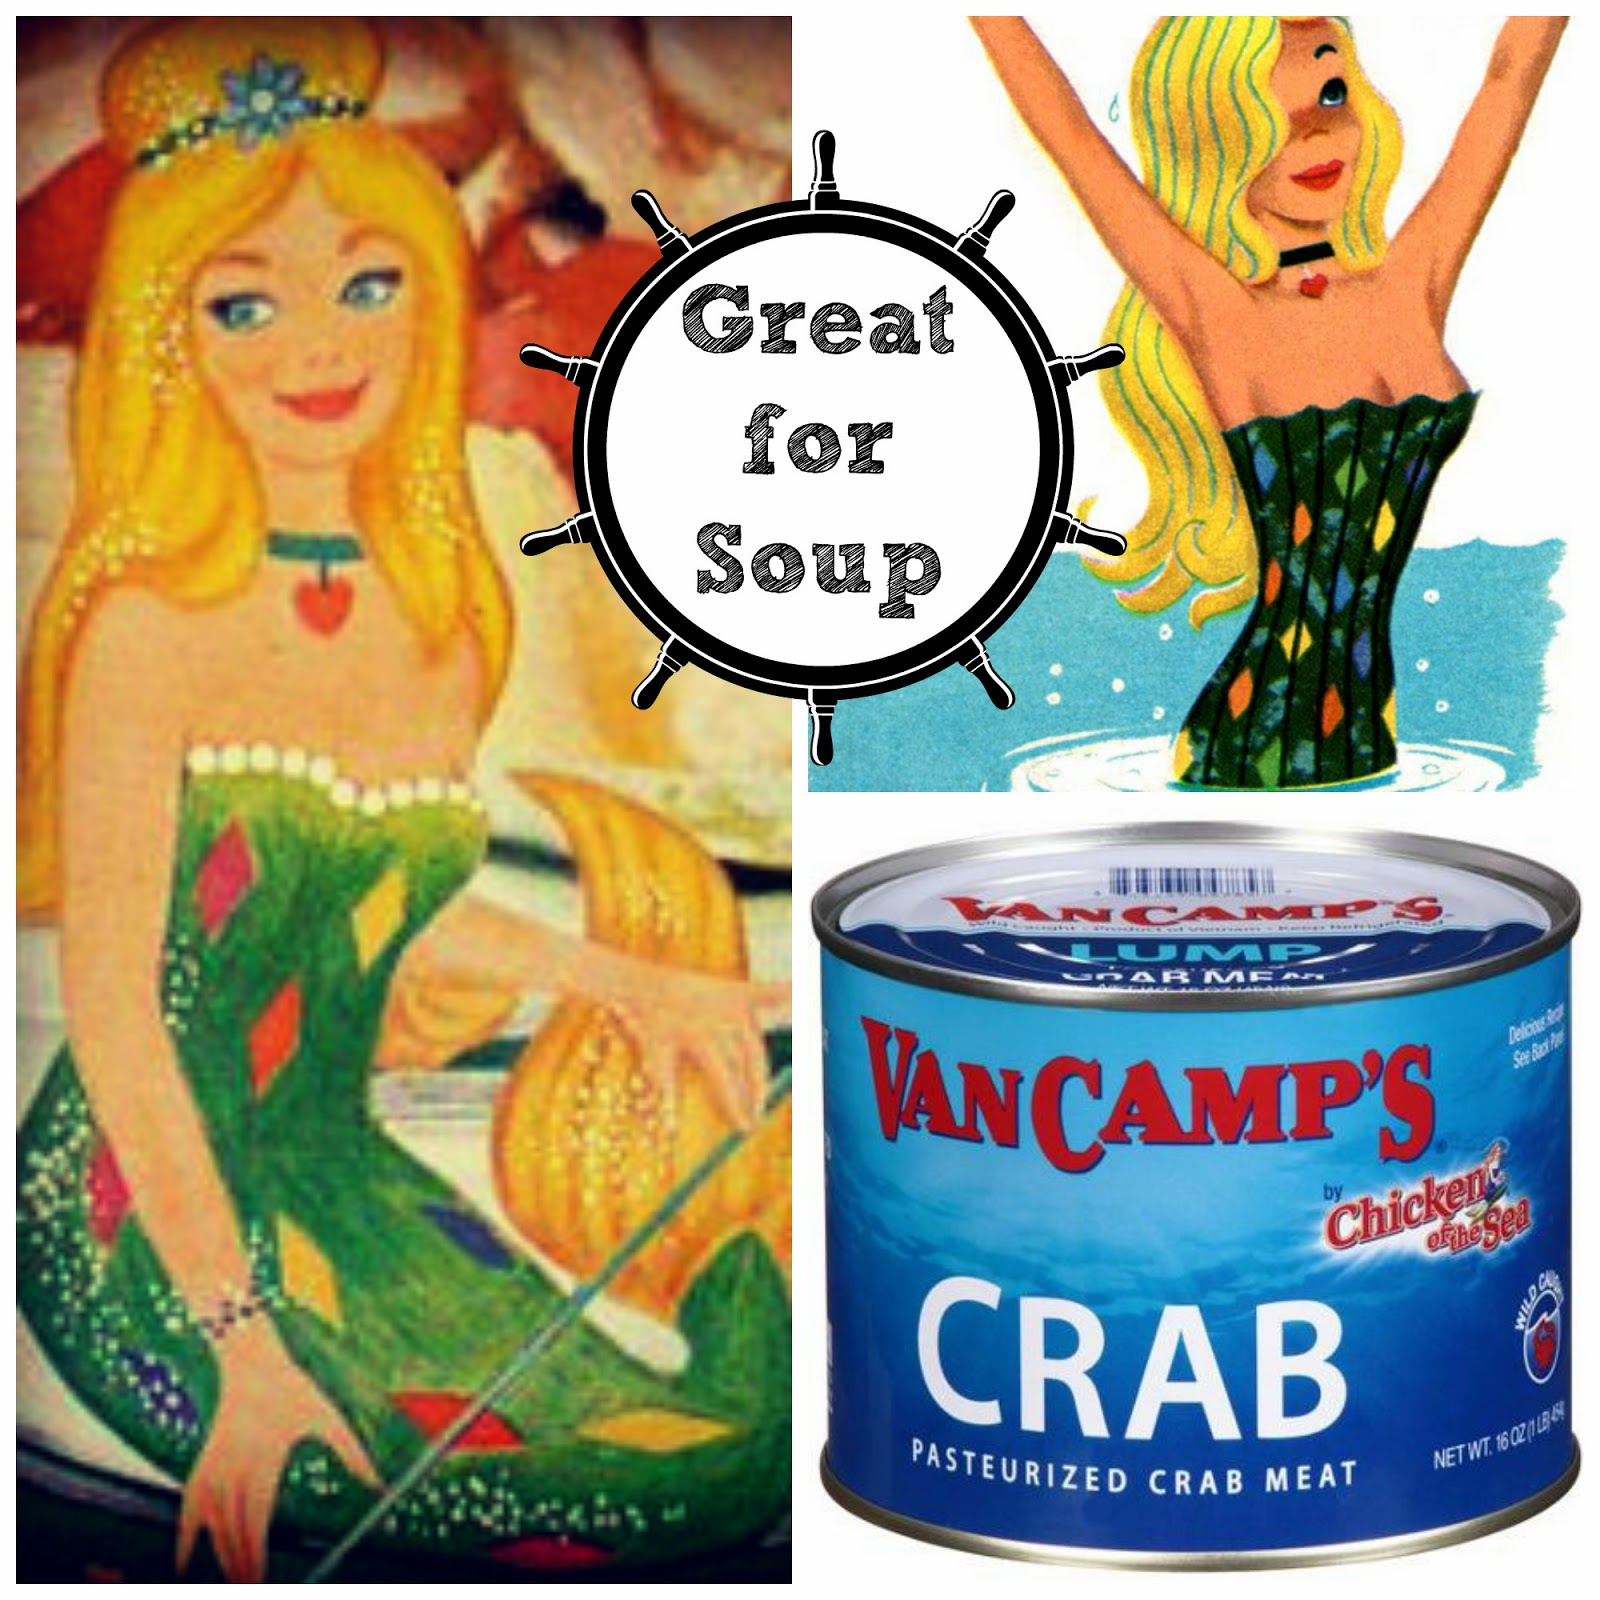 Van Camps Crab Meat Love It